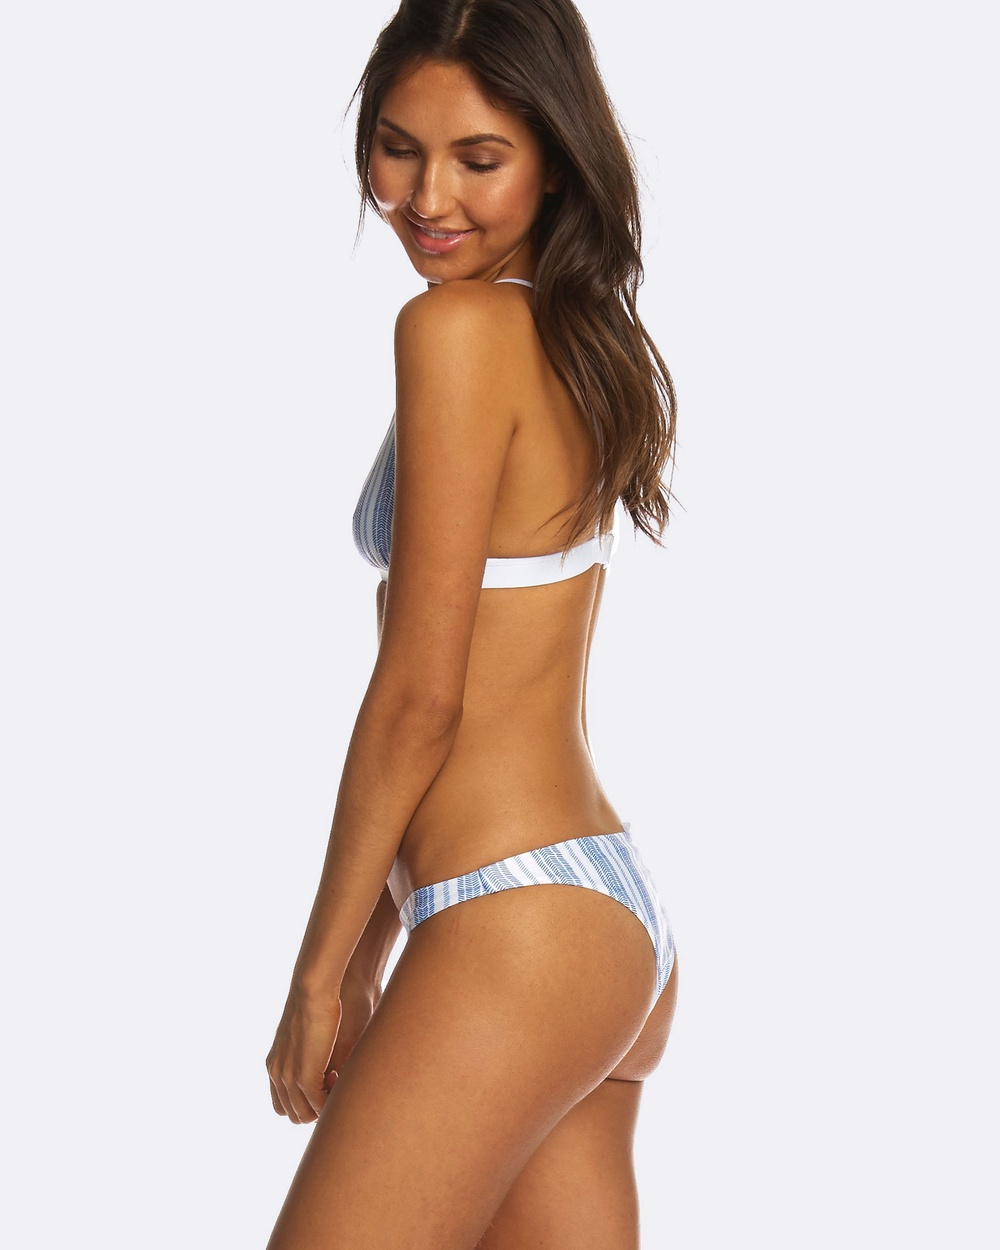 RH Swimwear Cheeky low riser Salt stripe Bikini Bottoms Salt stripe Cheeky low riser Salt stripe